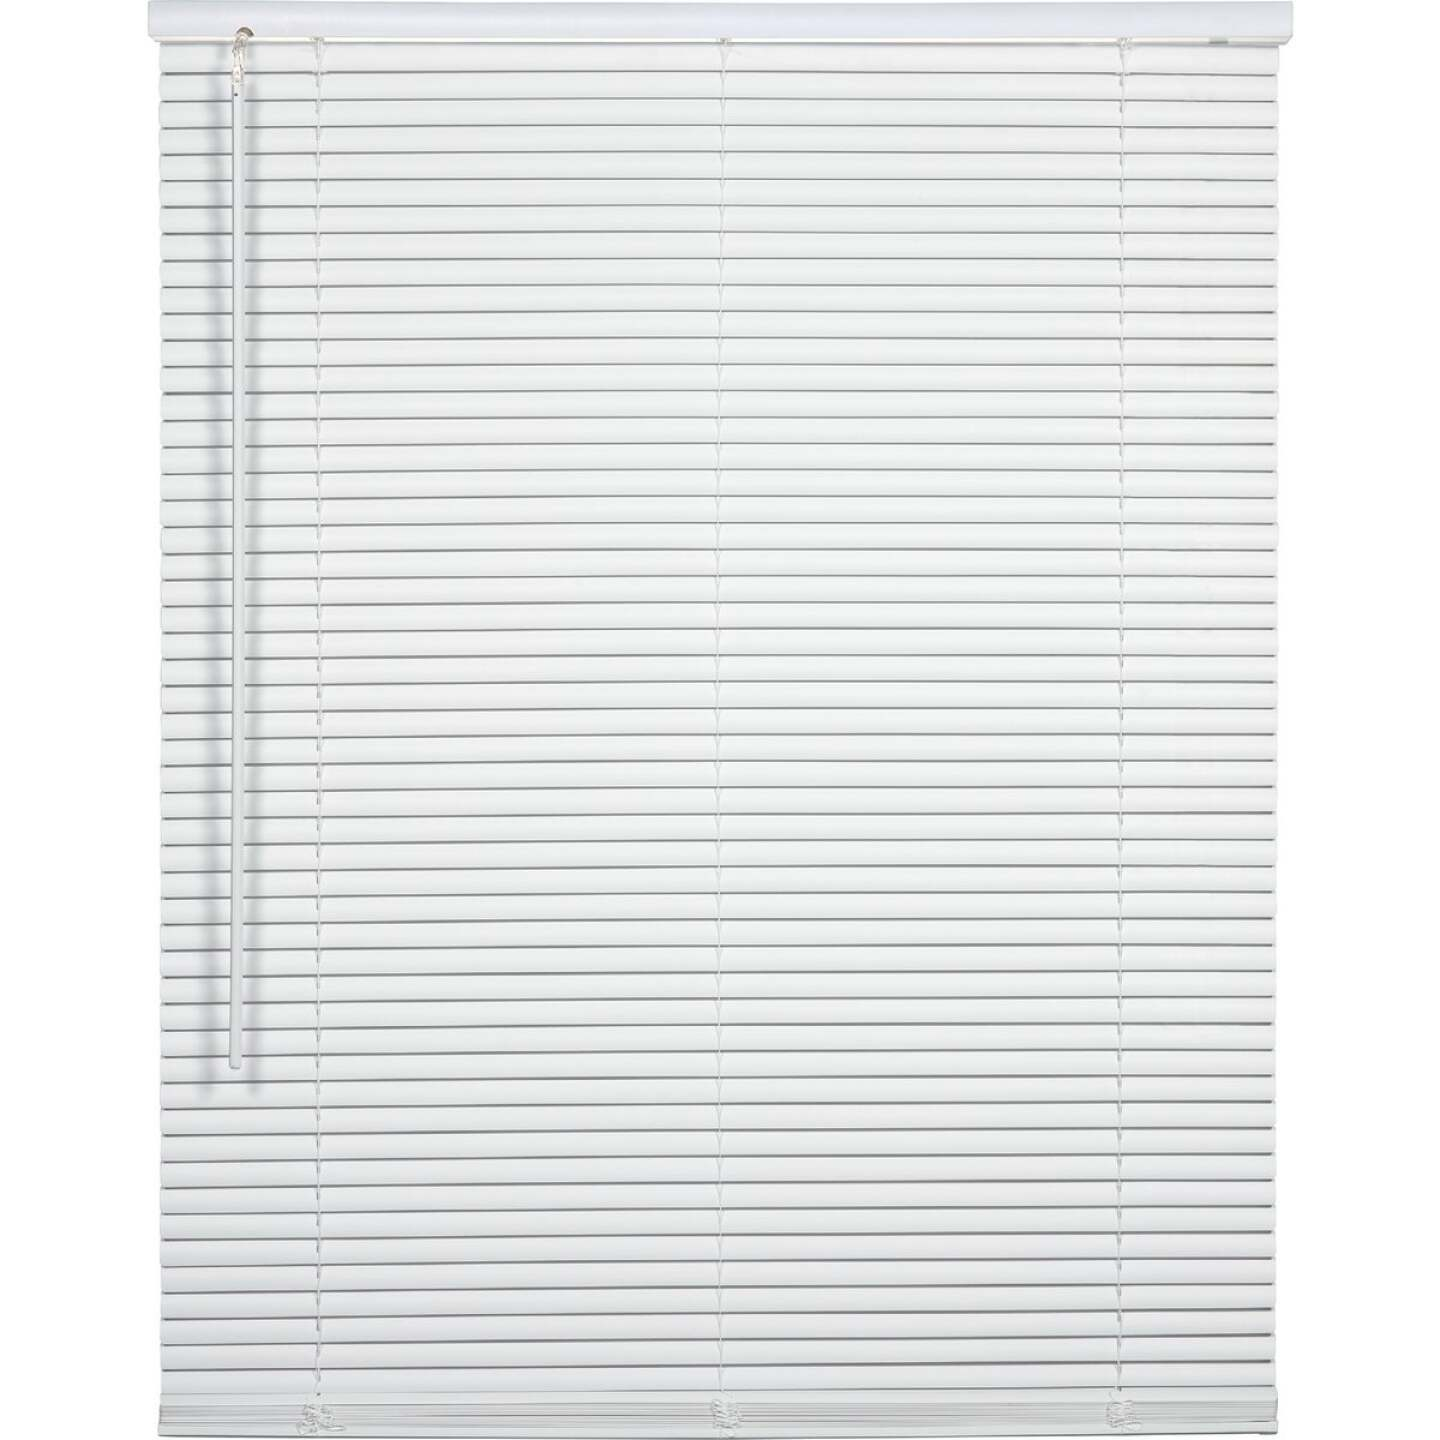 Home Impressions 20 In. x 64 In. x 1 In. White Vinyl Light Filtering Cordless Mini Blind Image 1